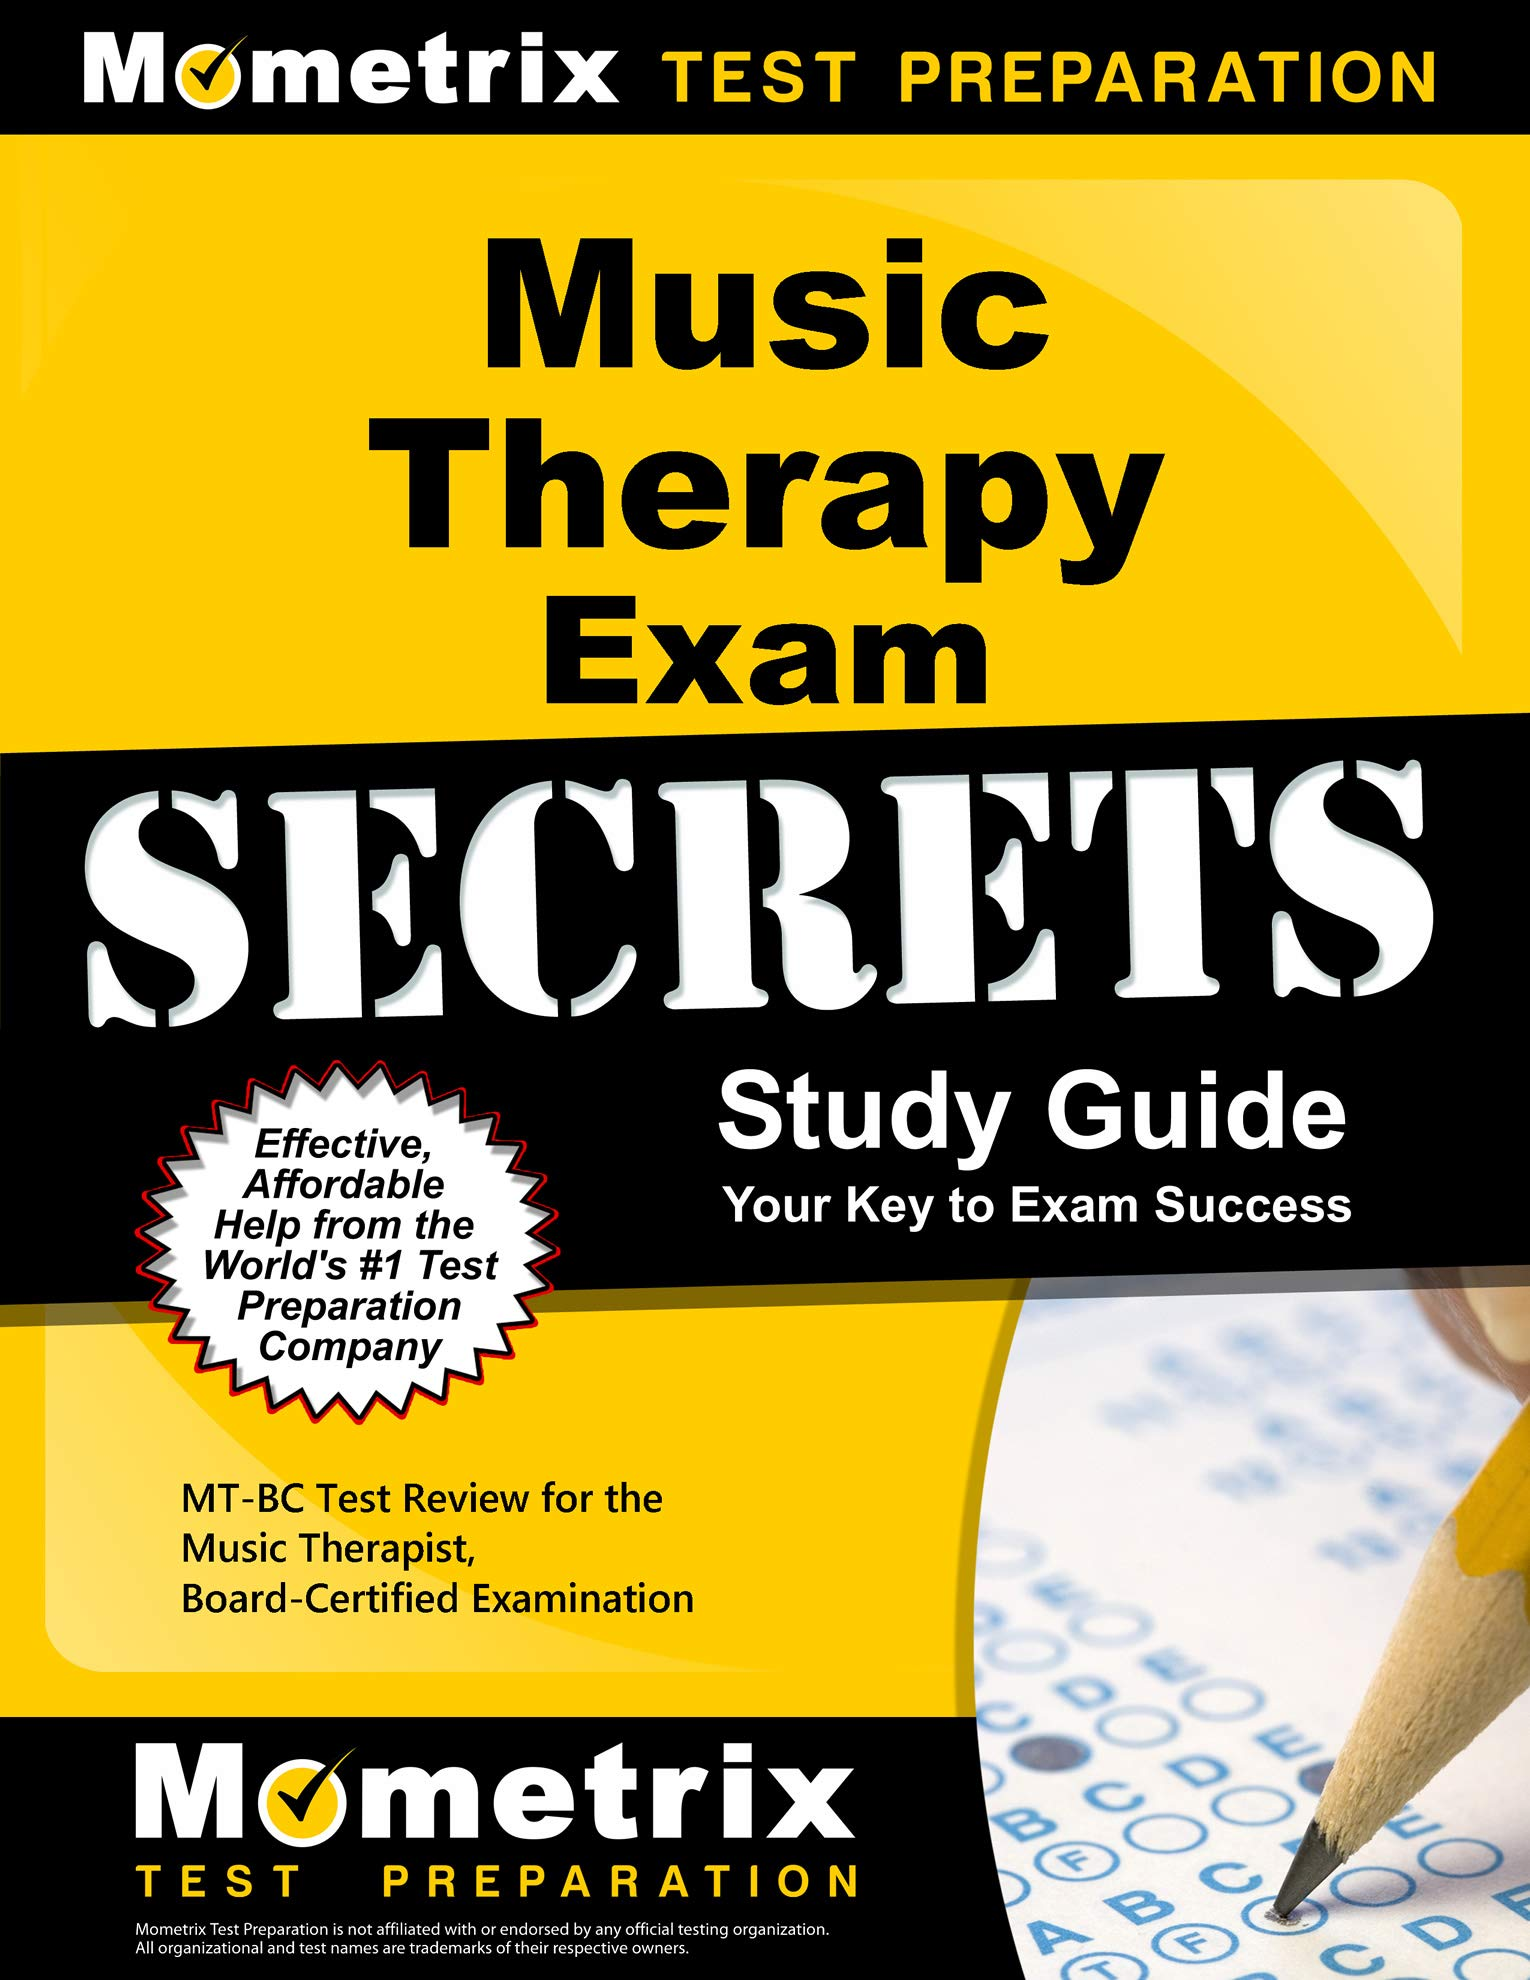 Music Therapy Exam Secrets Study Guide: MT-BC Test Review for the Music Therapist, Board-Certified Examination by Mometrix Media LLC